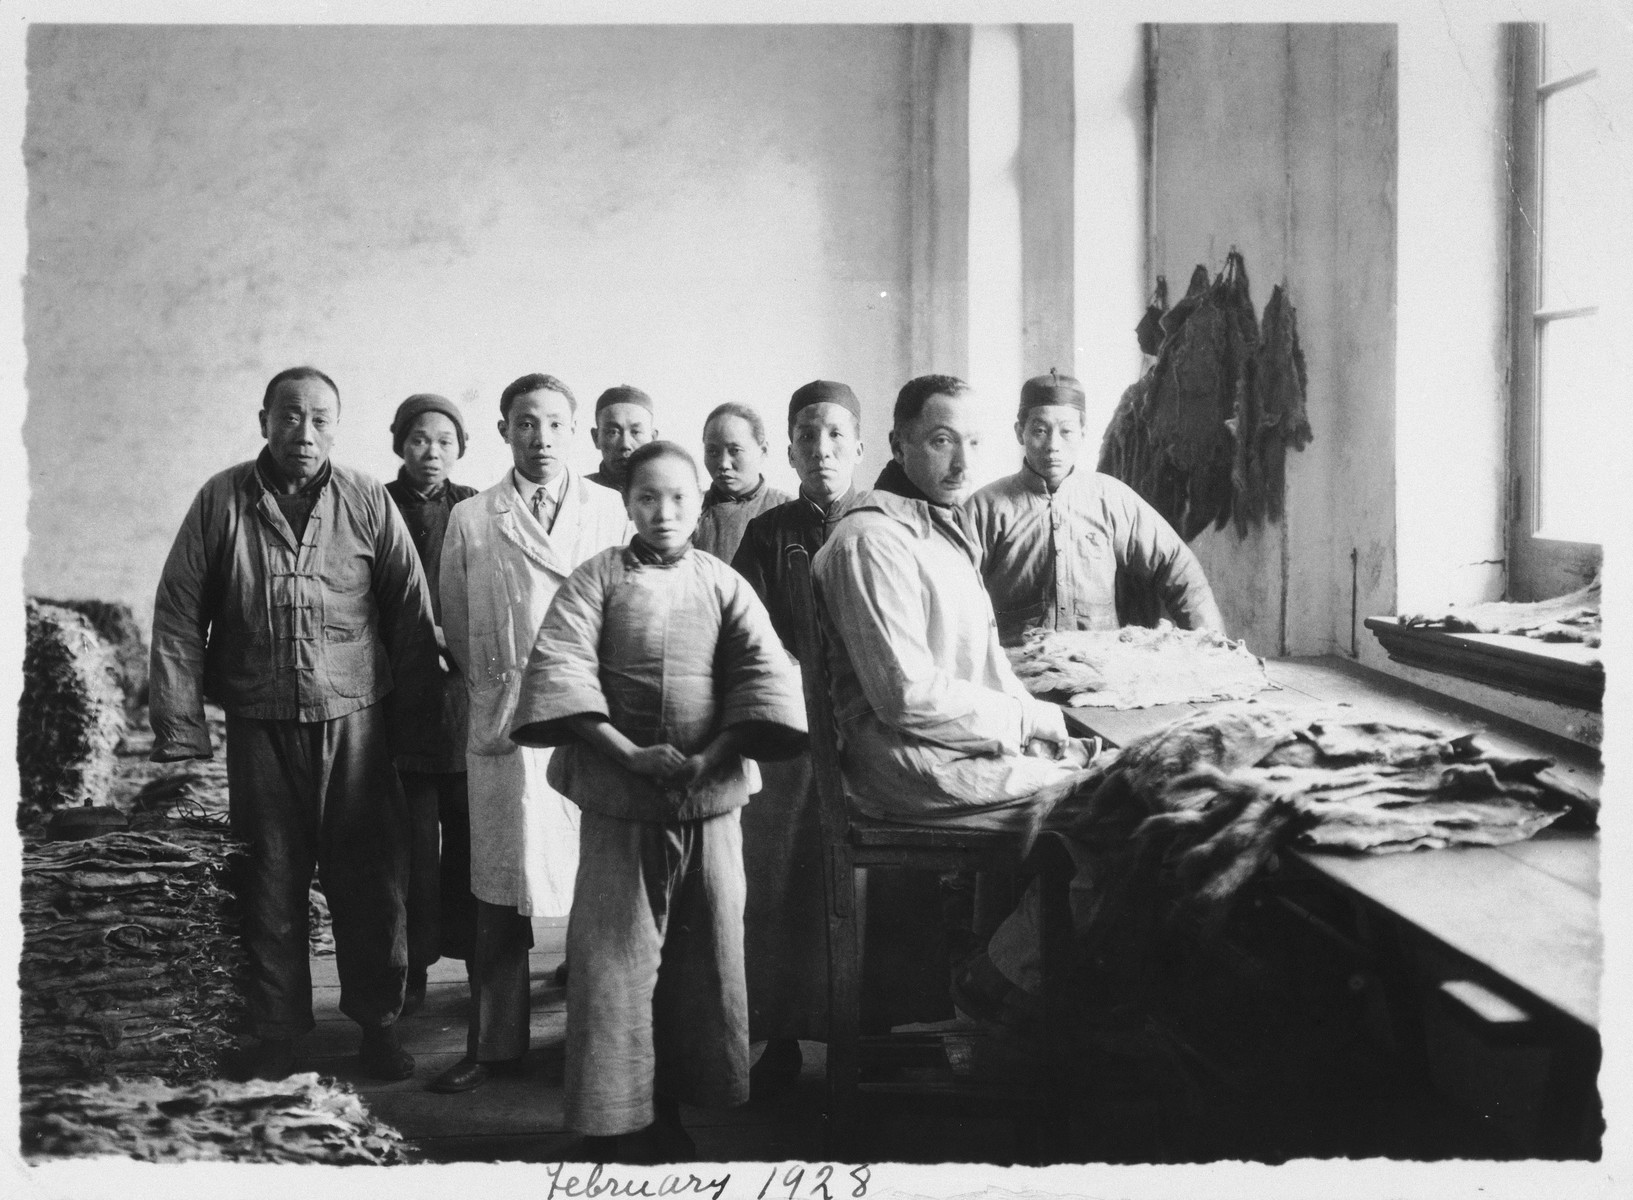 Paul Komor poses with a group of Chinese employees at a tannery in Shanghai.